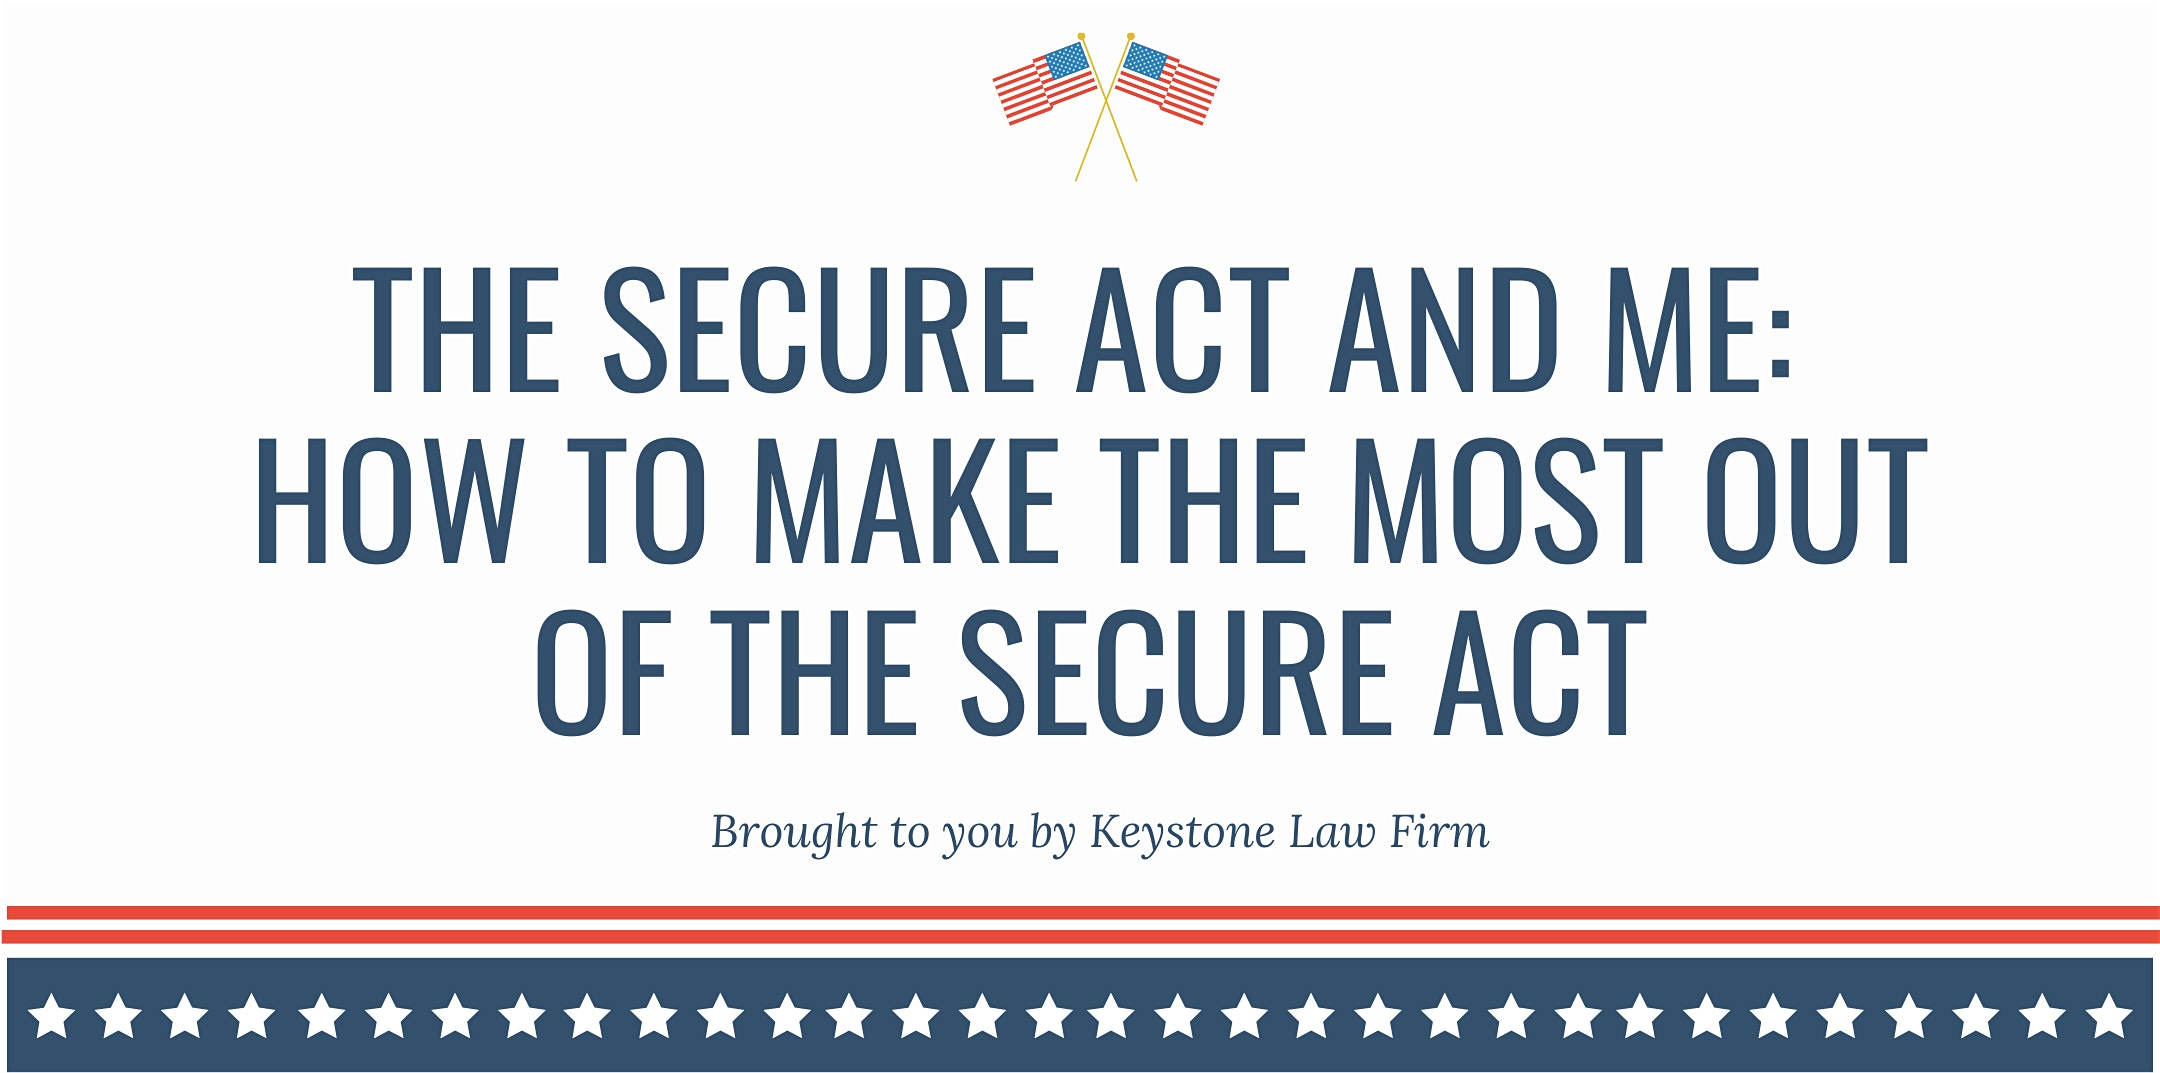 The Secure Act And Me How To Make The Most Out Of The